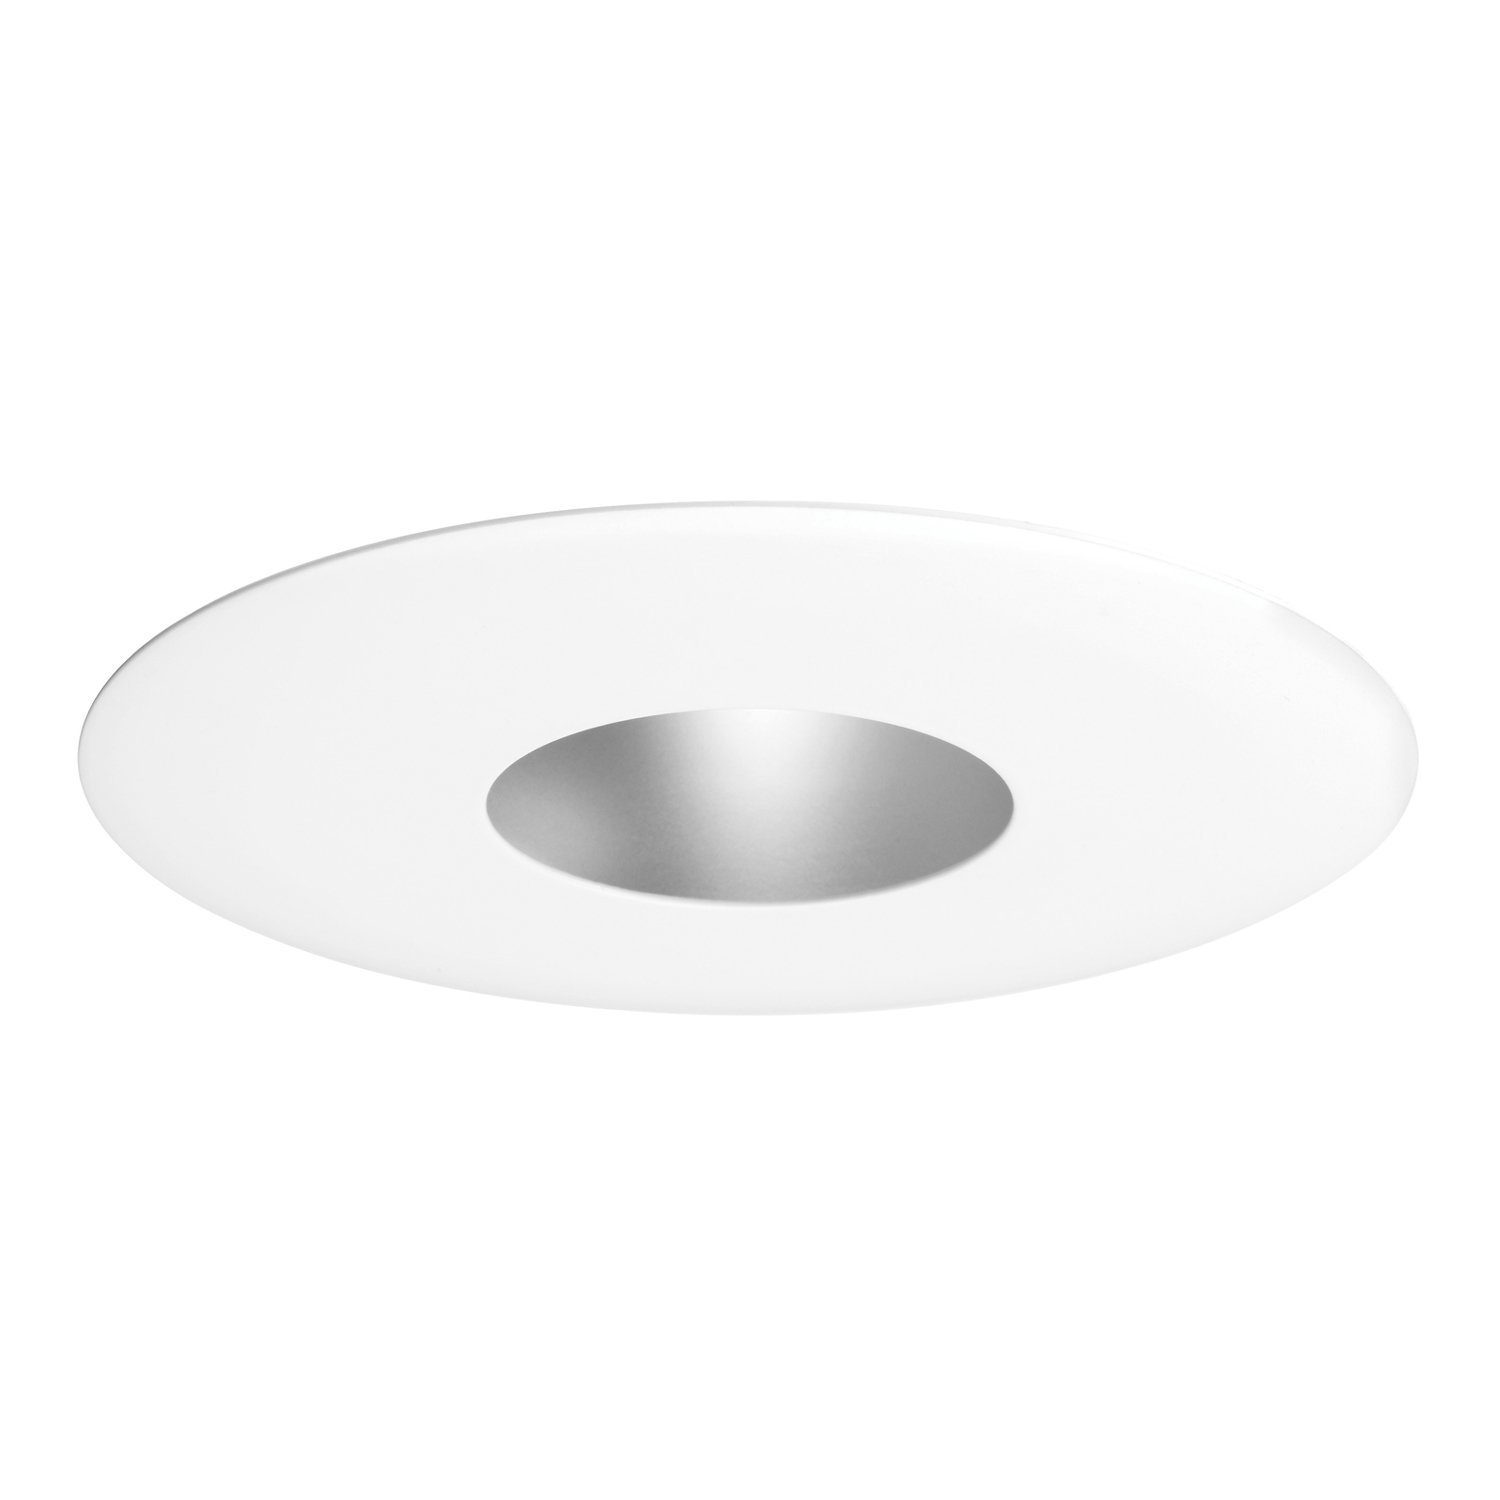 Juno Lighting 13-WH 4-Inch Pinhole Trim with Integral Shield, White